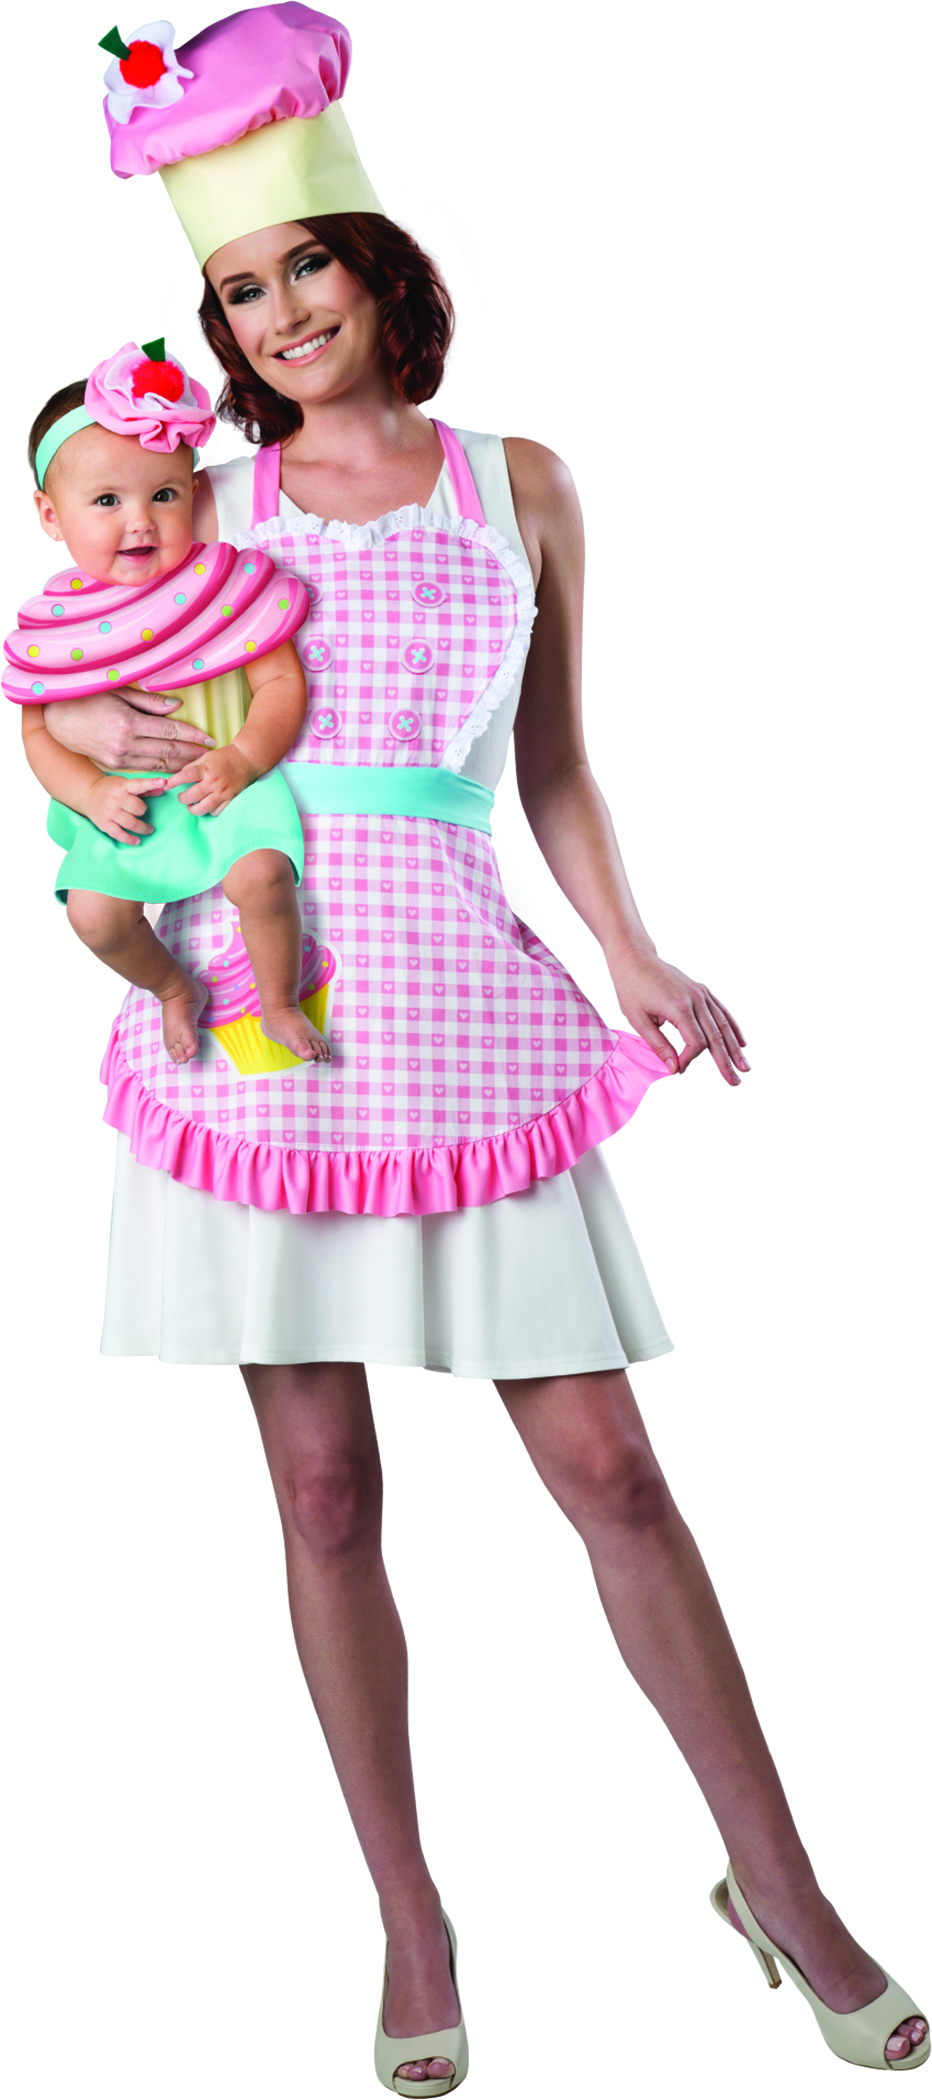 6fee88753 Kmart Offers its New Line of CUTEST Matching Costumes Ever for Moms & Babies  this Halloween